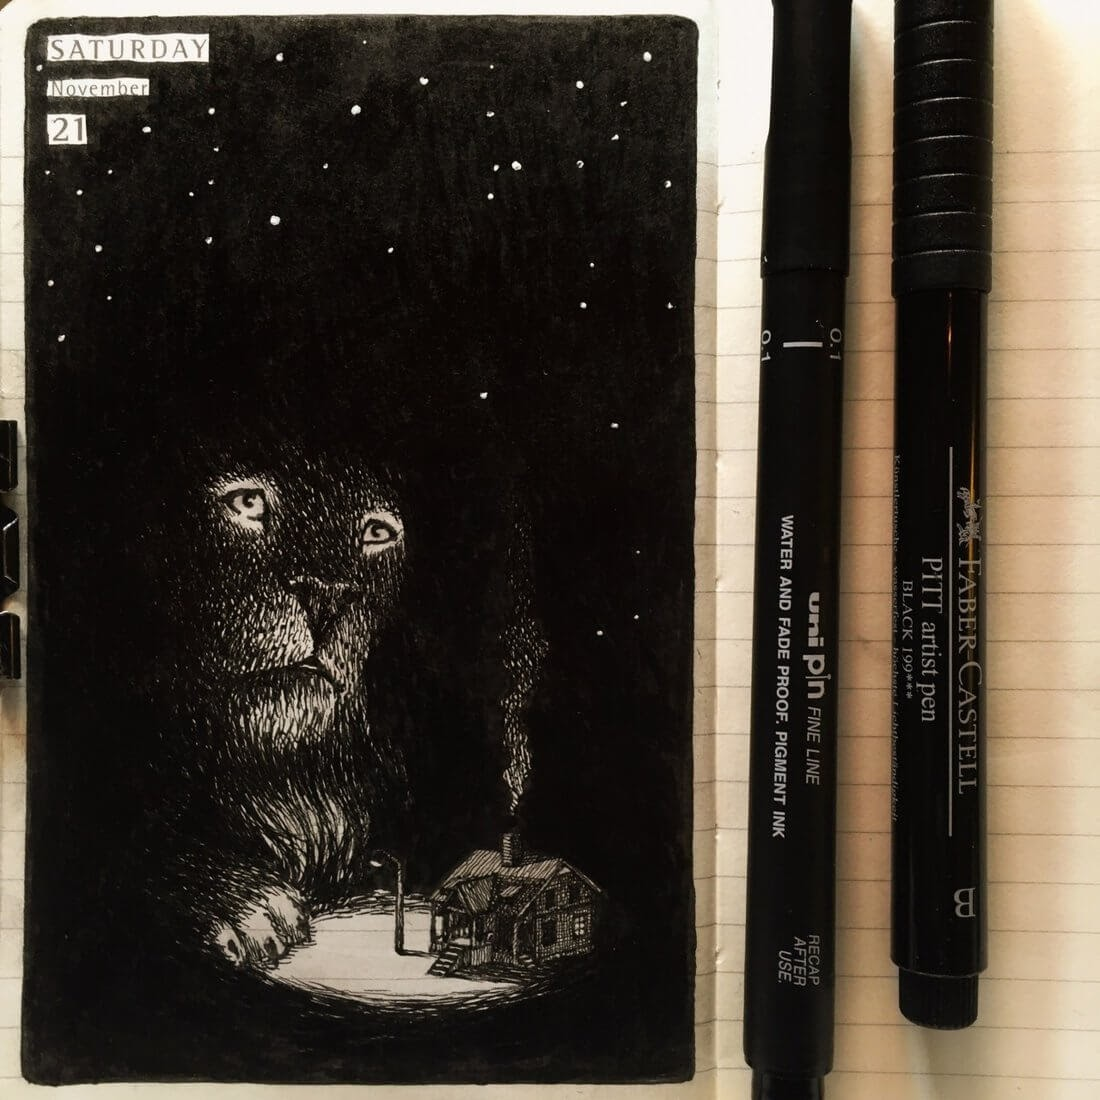 08-Alone-in-the-Dark-Nina-Johansson-Moleskine-Diary-of-Surreal-Ink-Drawings-www-designstack-co